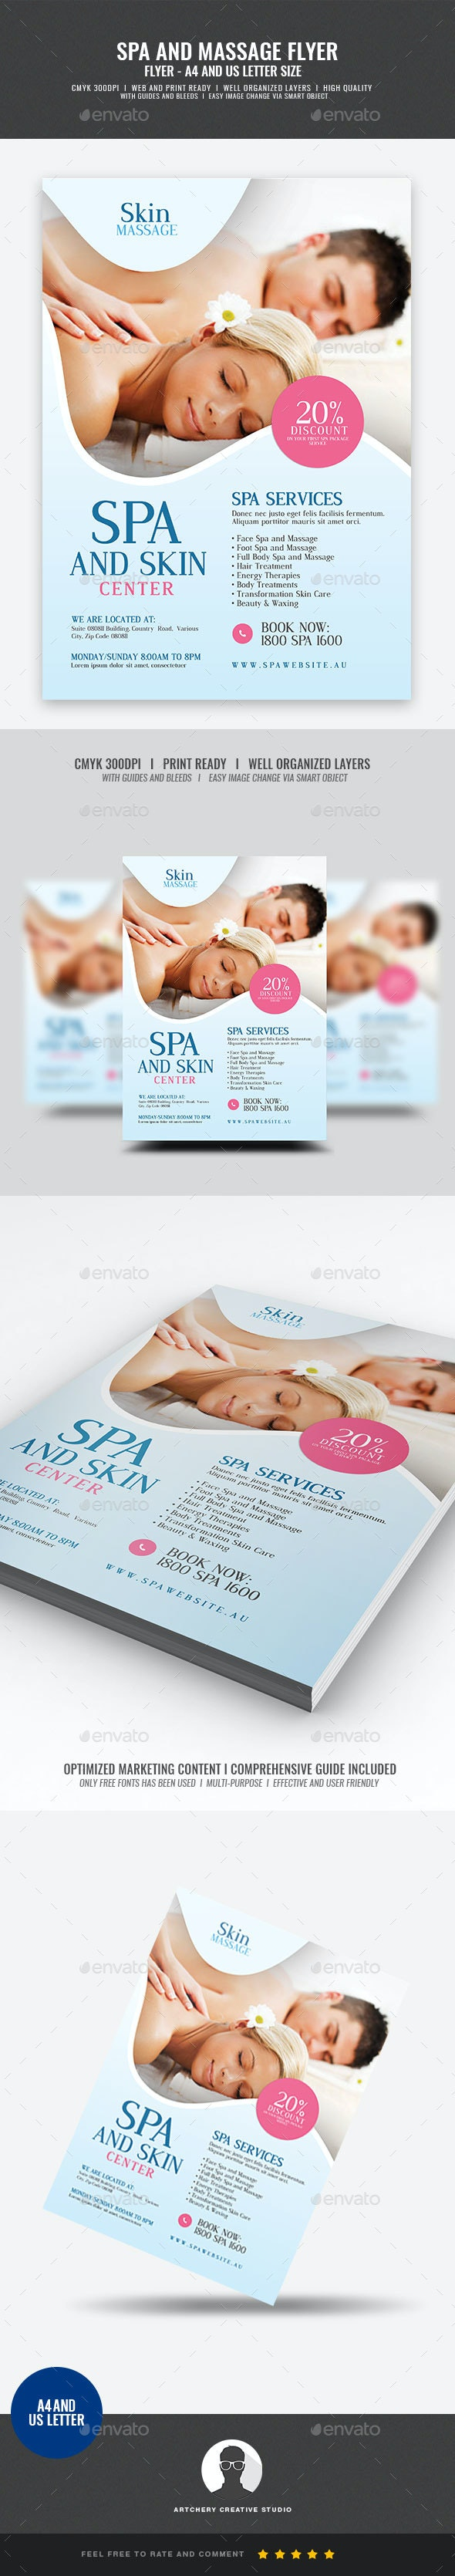 Spa and Massage Flyer - Corporate Flyers